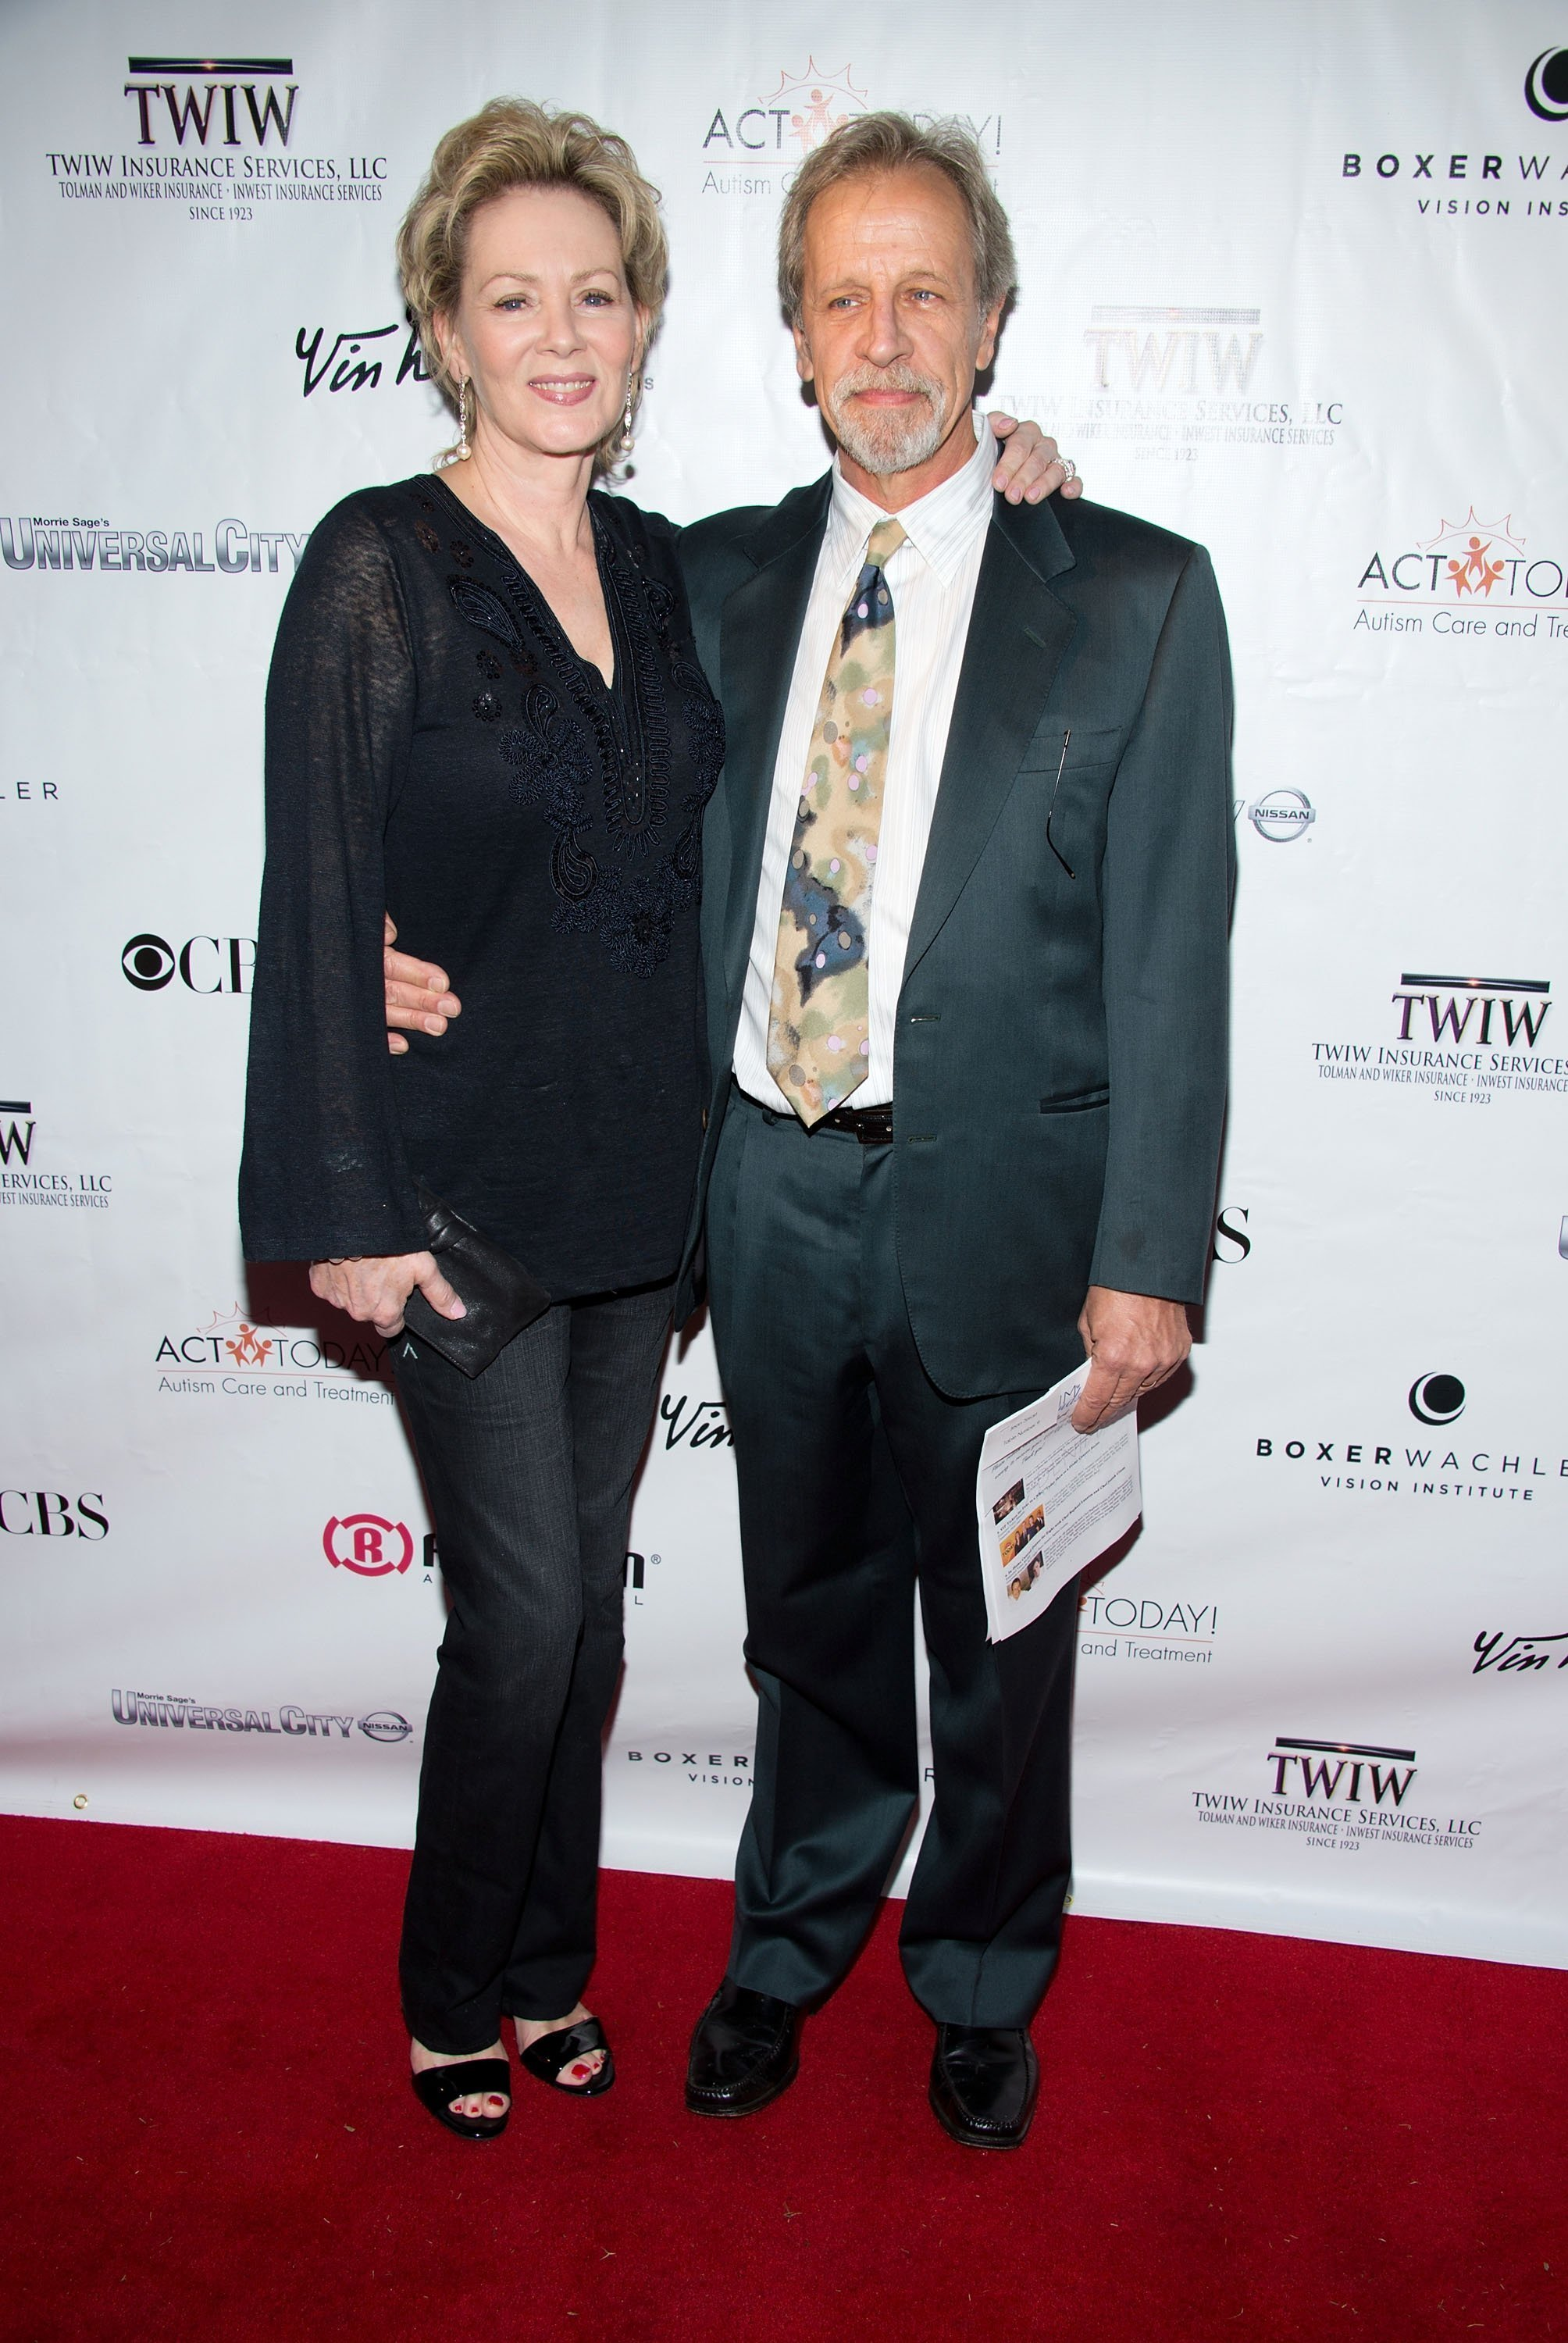 Jean Smart Of Designing Women Fame Has Been Married For 32 Years Here S A Look At Her Marriage Check out couple comparison to know about their age, birth place, net worth, salary, height, weight, ethnicity, nationality, profession, lucky numbers etc. jean smart of designing women fame